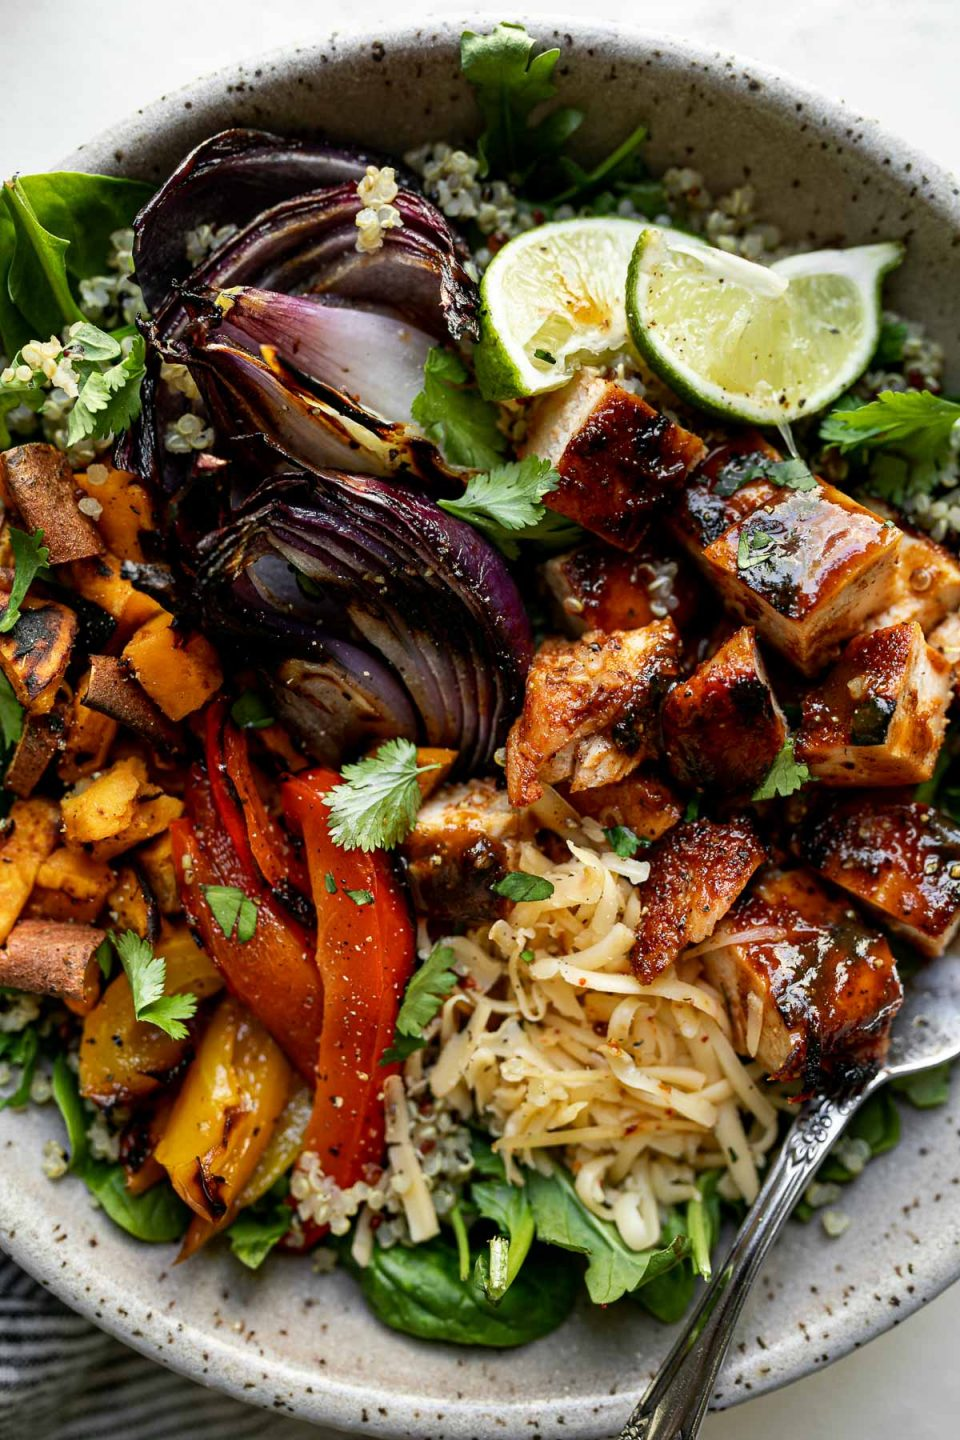 Close up of grilled BBQ chicken bowl with diced BBQ chicken, grilled onions, sweet potatoes & bell peppers sitting atop a bed of greens & quinoa in a large speckled gray bowl. The bowl sits atop a white surface.